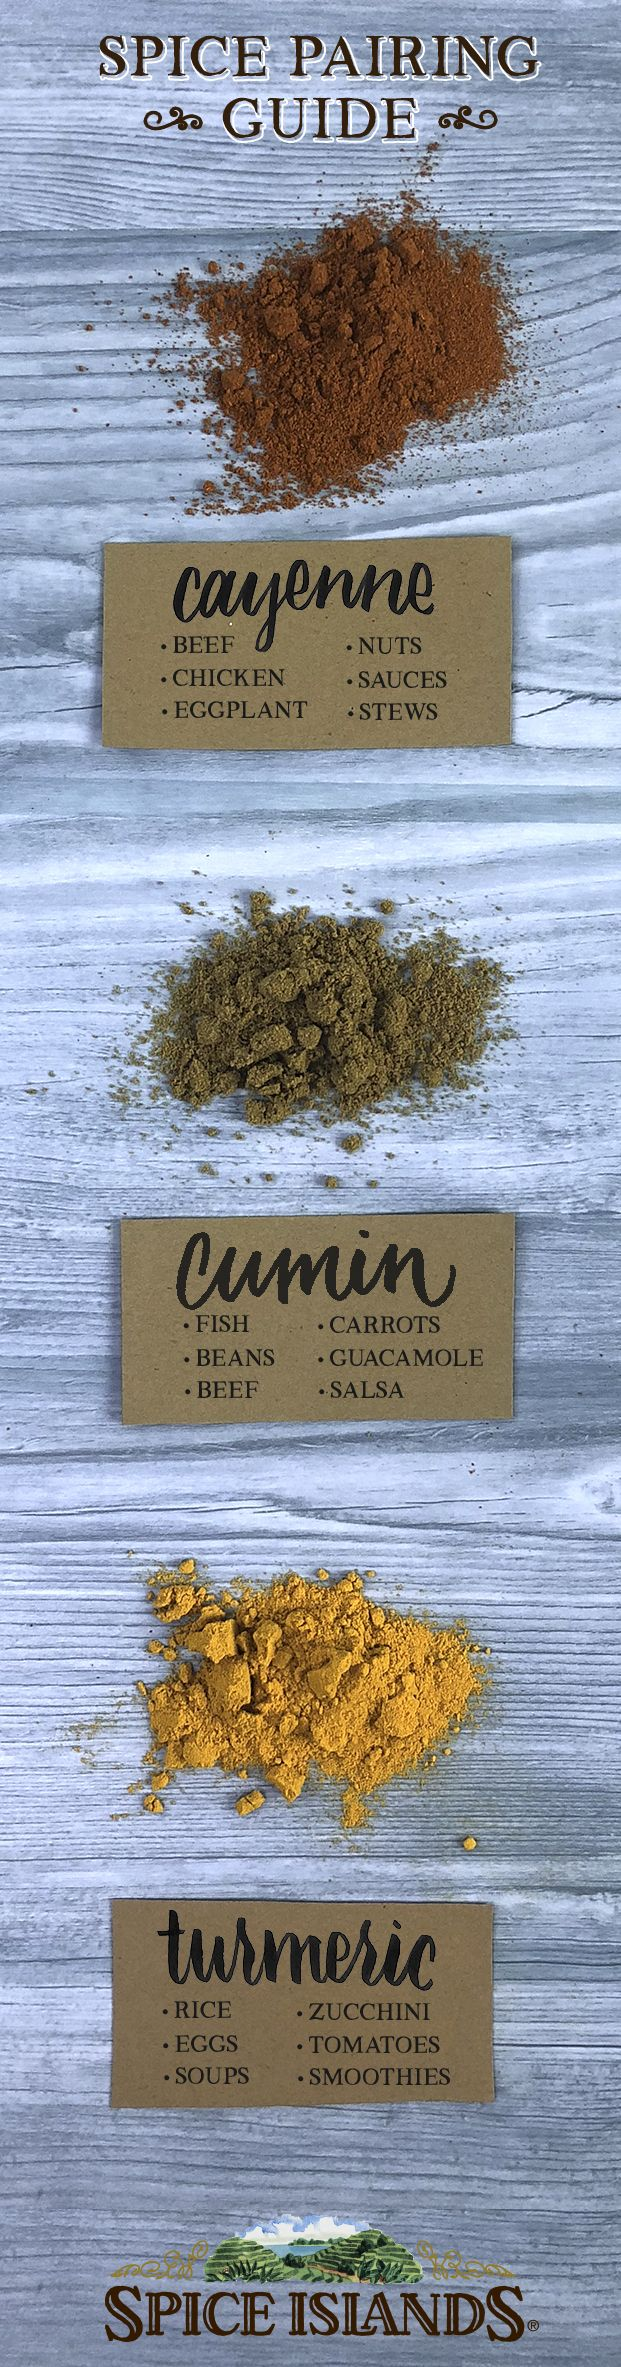 Spice Islands® Have Spice Islands® Ground Cumin Seed that you're not sure how to use? Want to add more flavor to your go-to dishes? Spice Islands® is here to help you kick things up a notch! Our Spice & Food Pairing Guide will help you match various spices and herbs with the right foods, so you can season your meals with confidence.